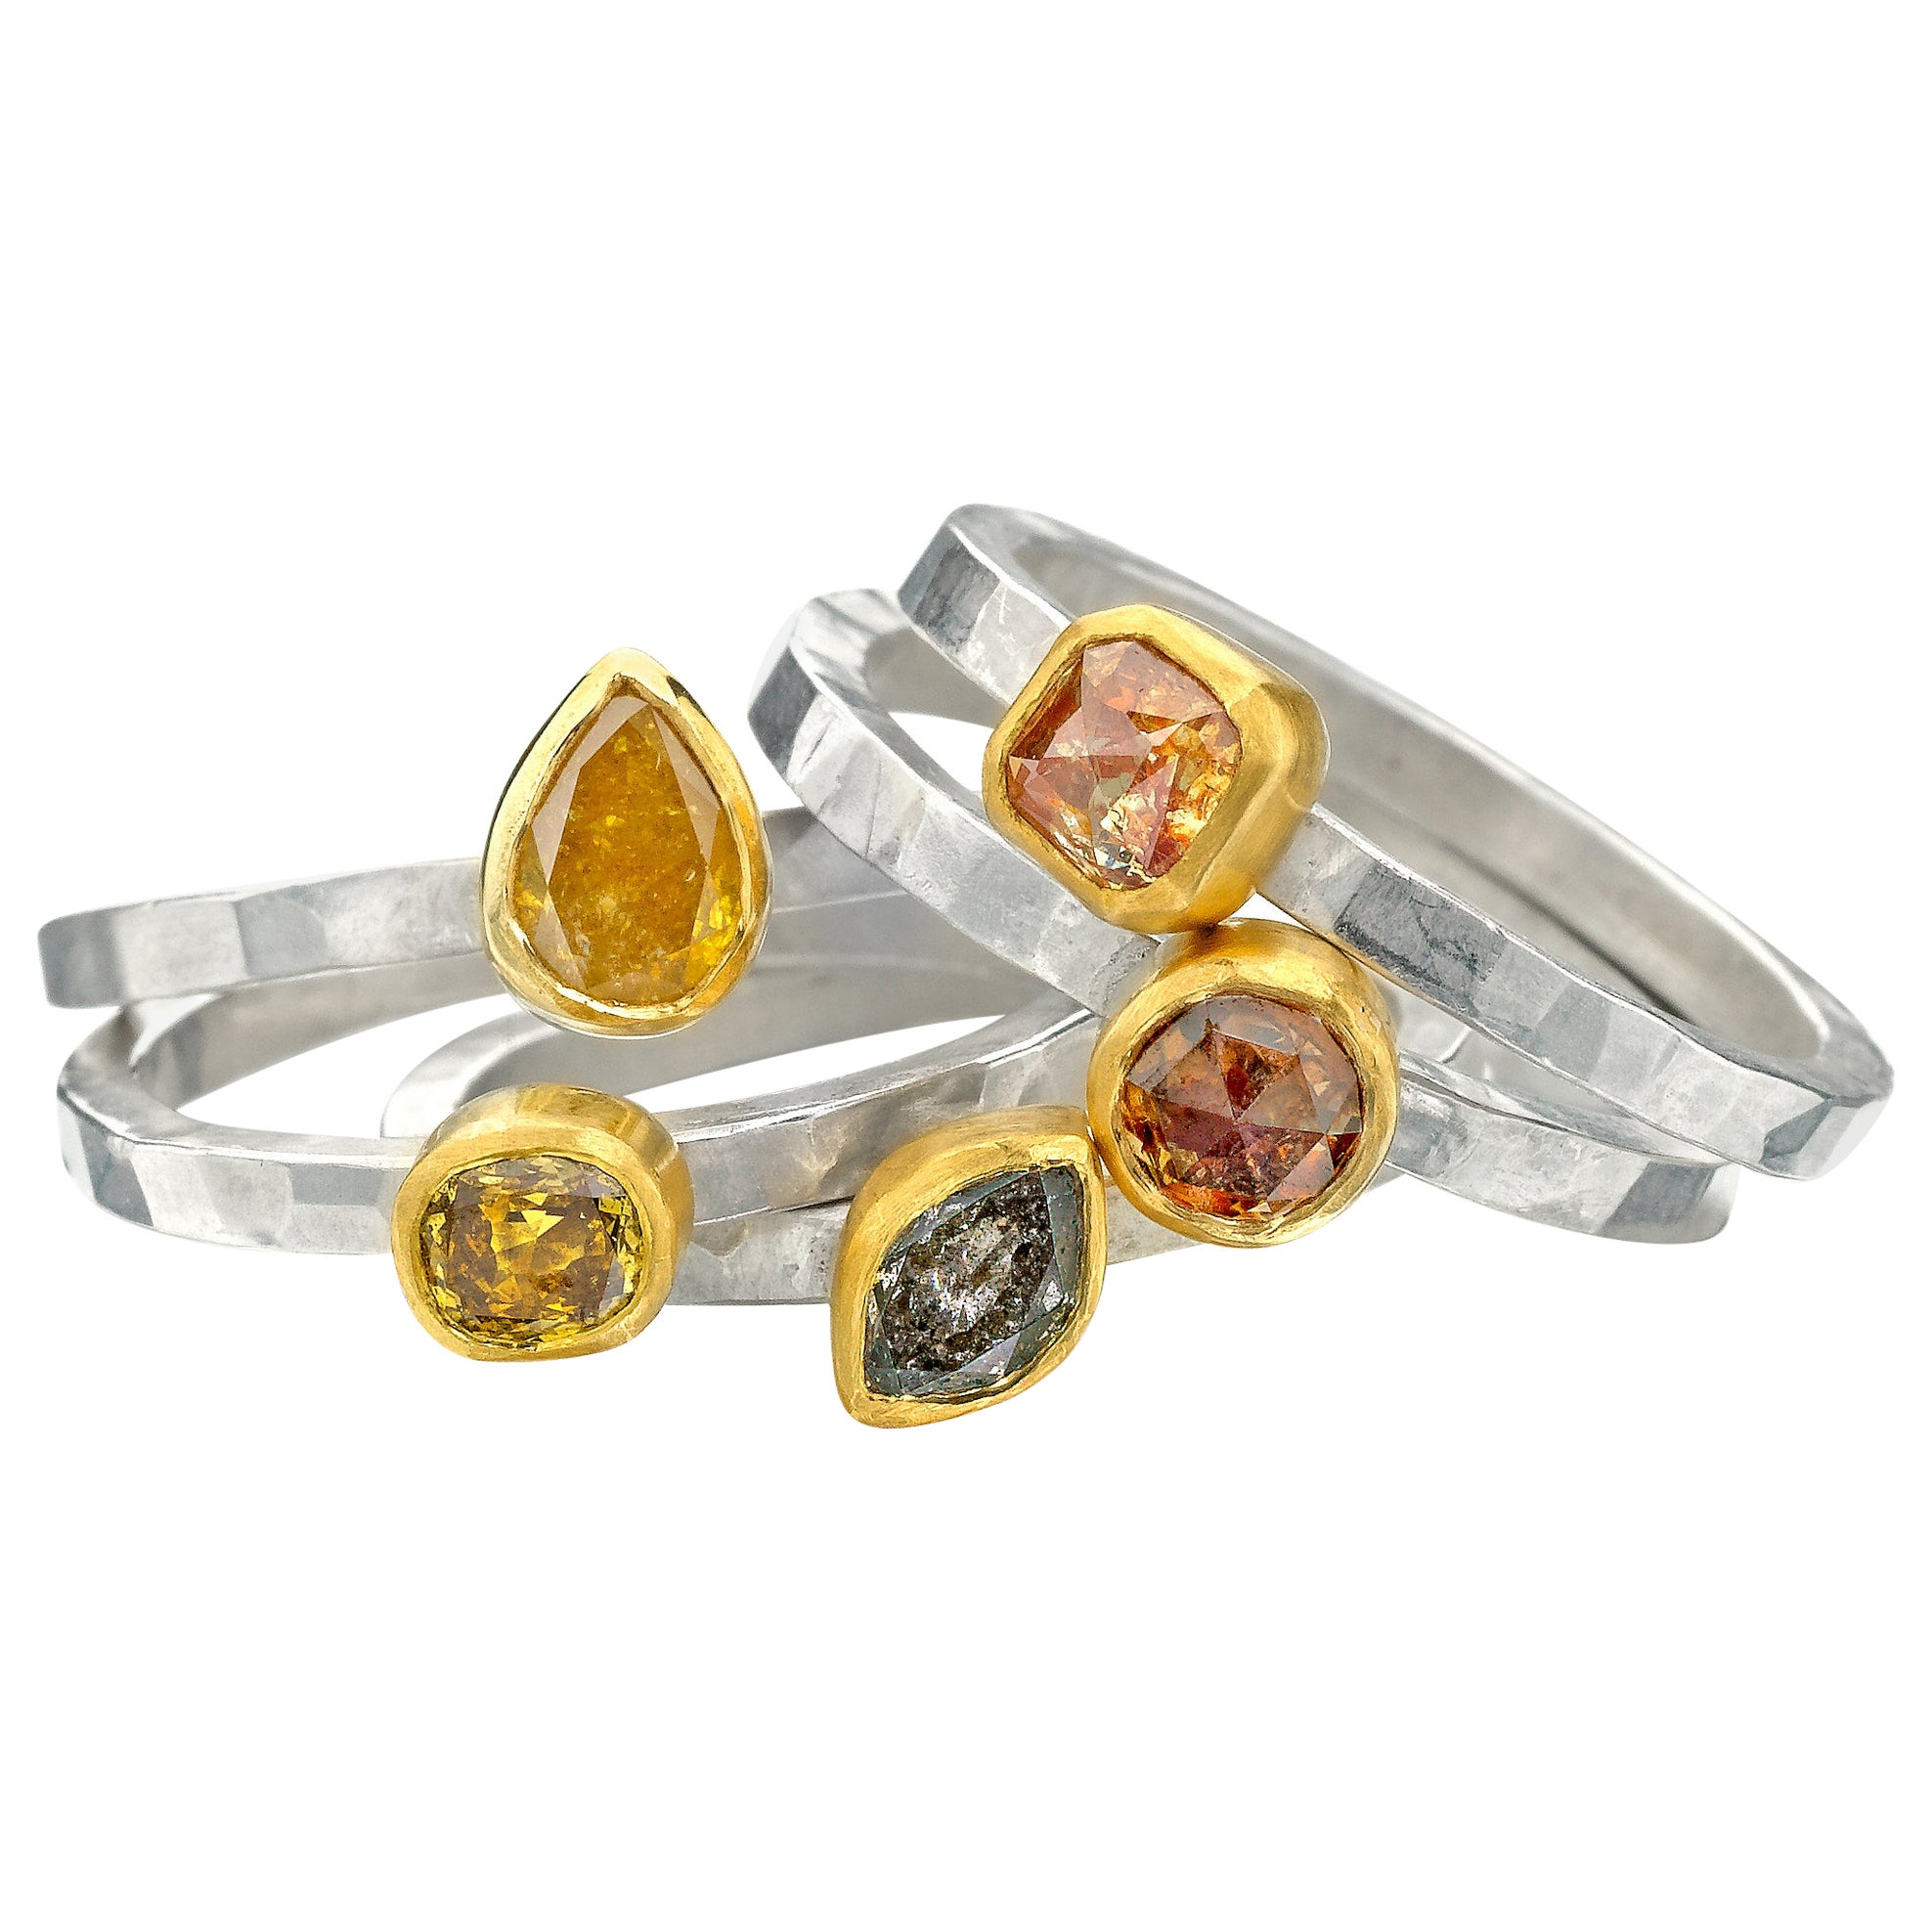 Fancy Colored Diamond Stack Rings 22 Karat Gold and Argentium Silver